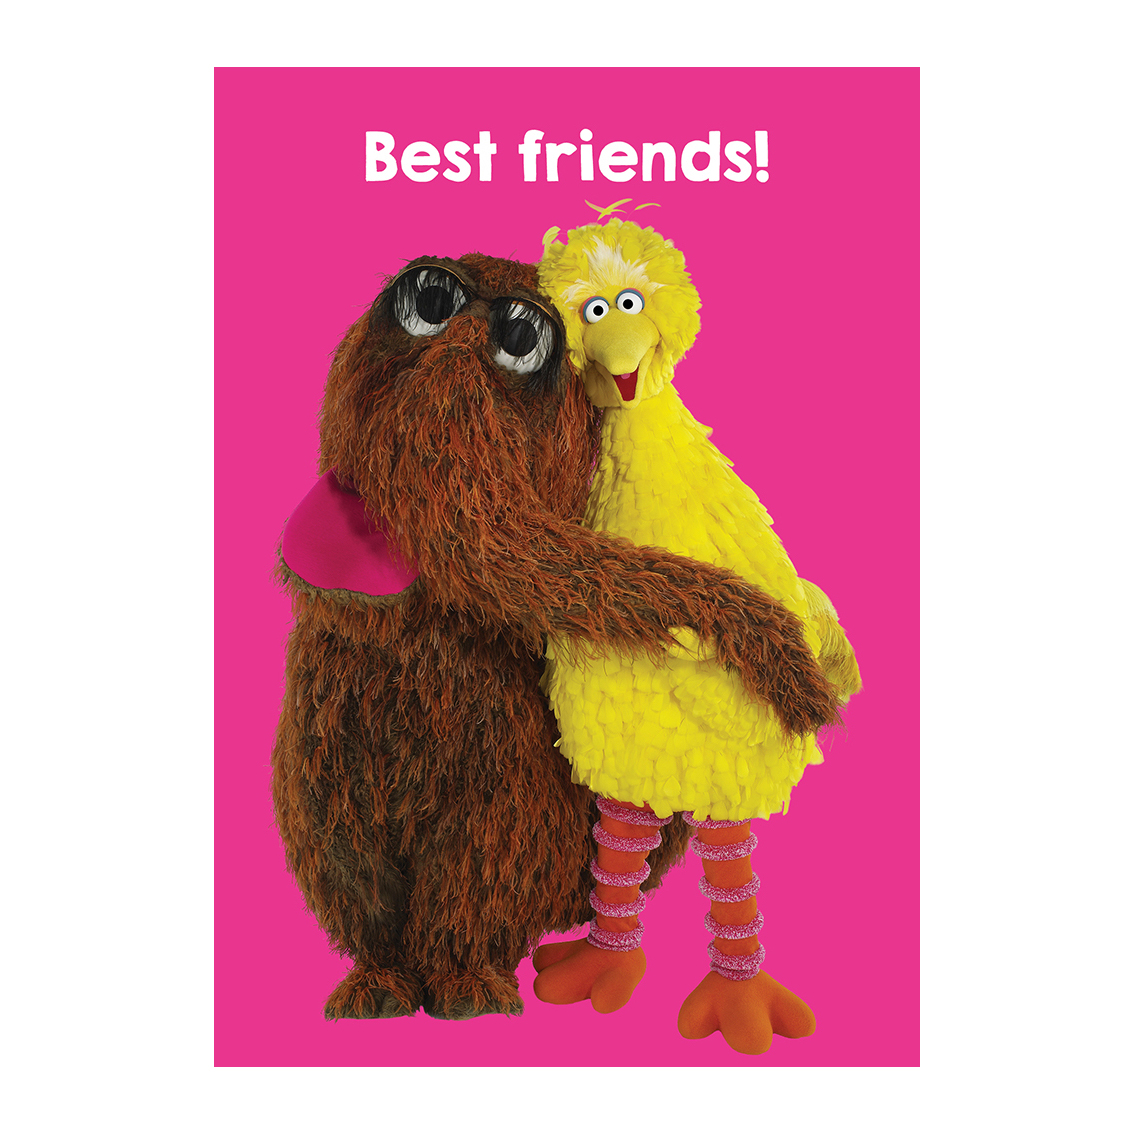 sesame street big bird snuffleupagus best friends greeting card - Big Greeting Cards